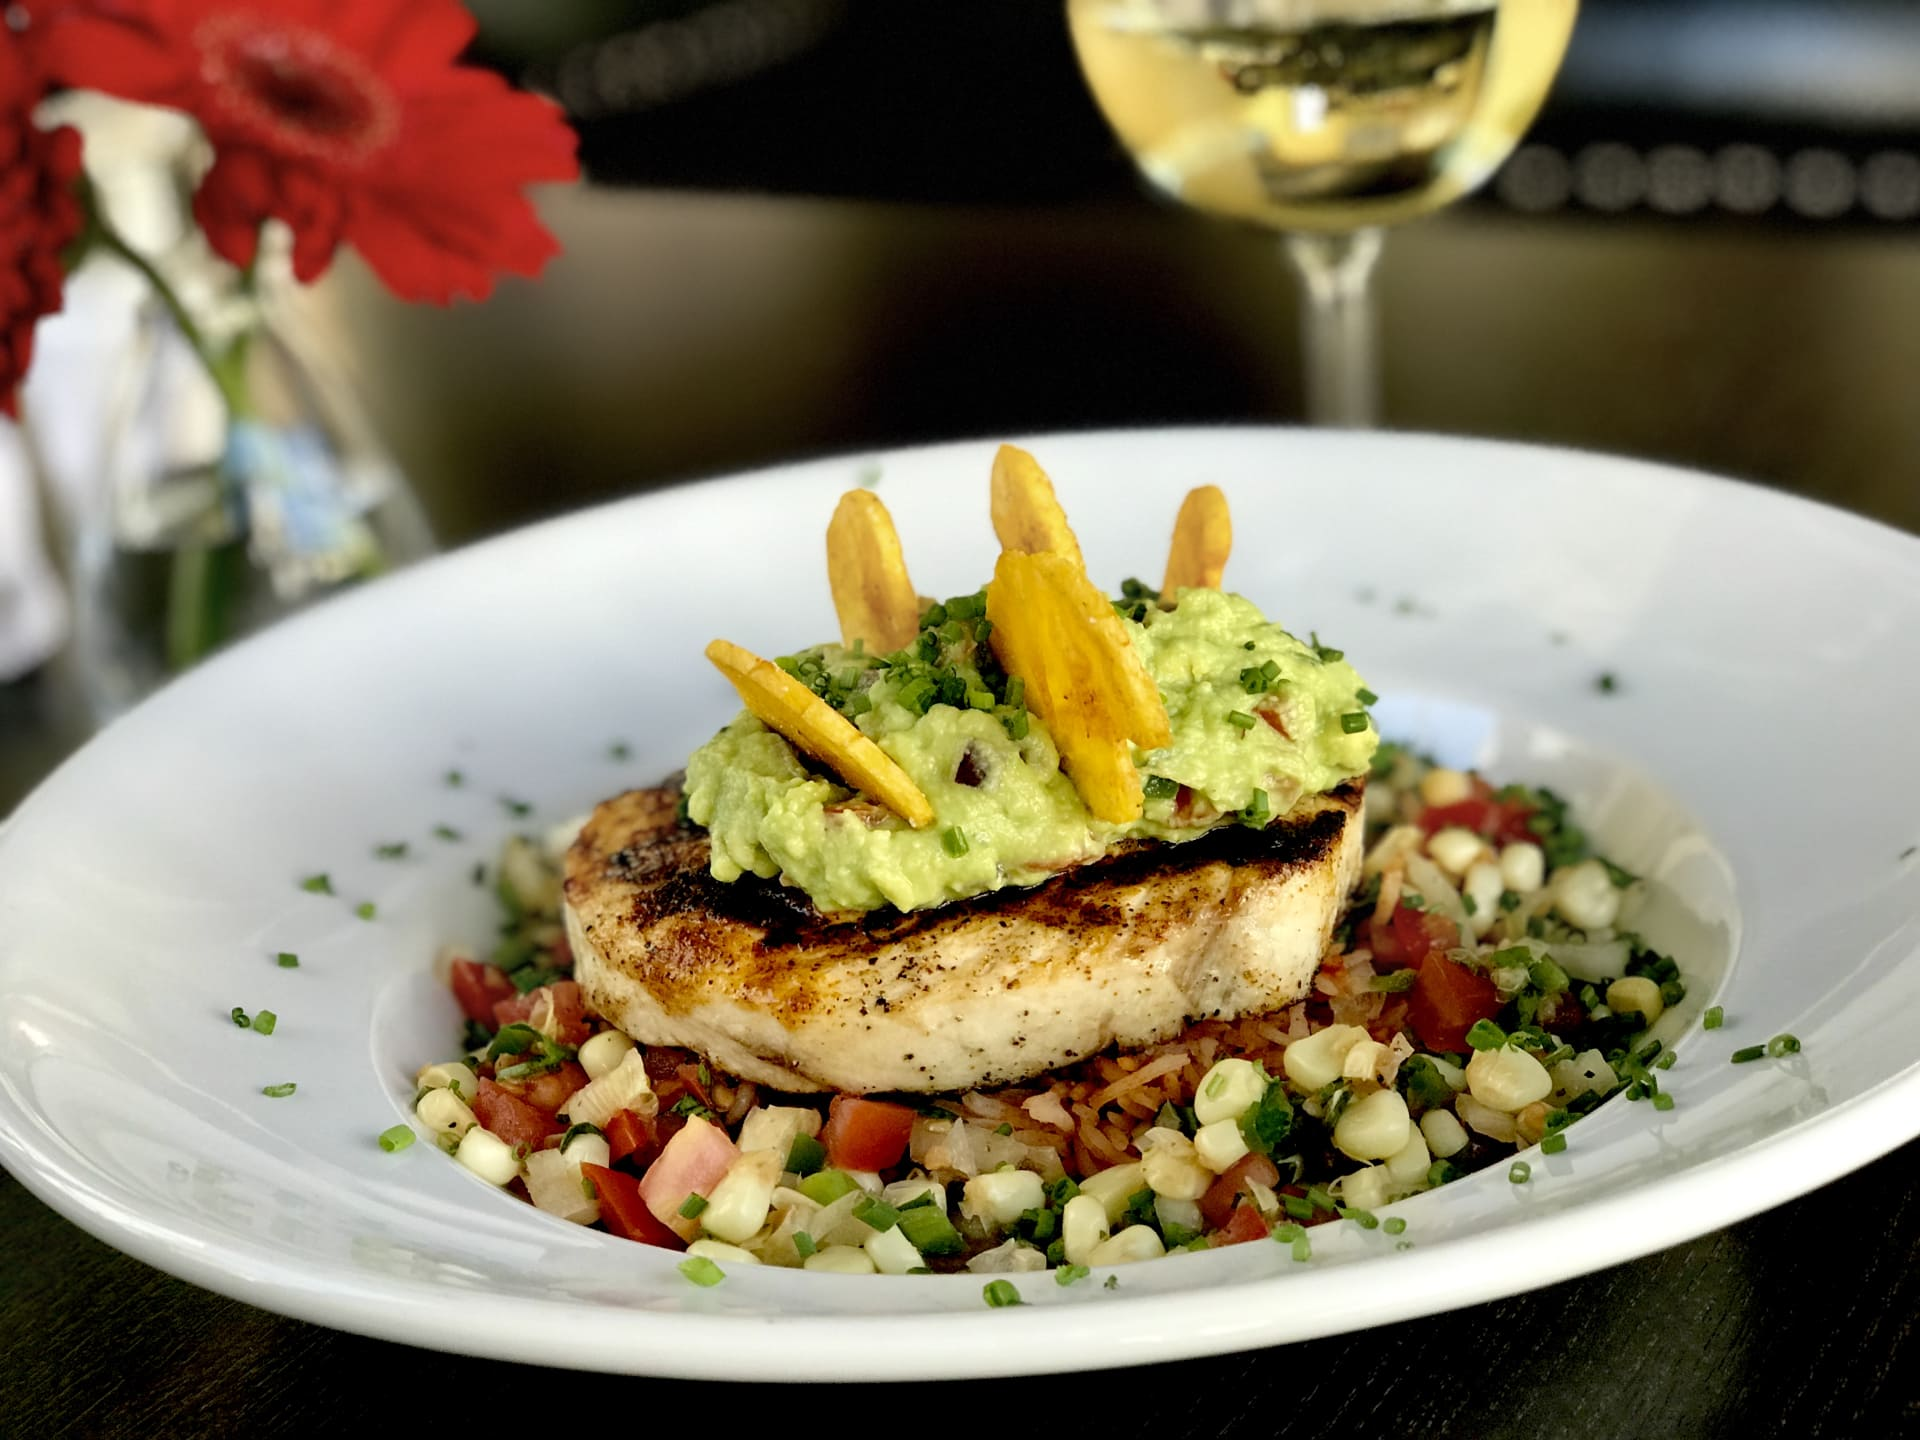 Grilled Wild Swordfish w/ Chili Style Black Bean Puree, Red Rice, Avocado Salsa & Fried Plantains